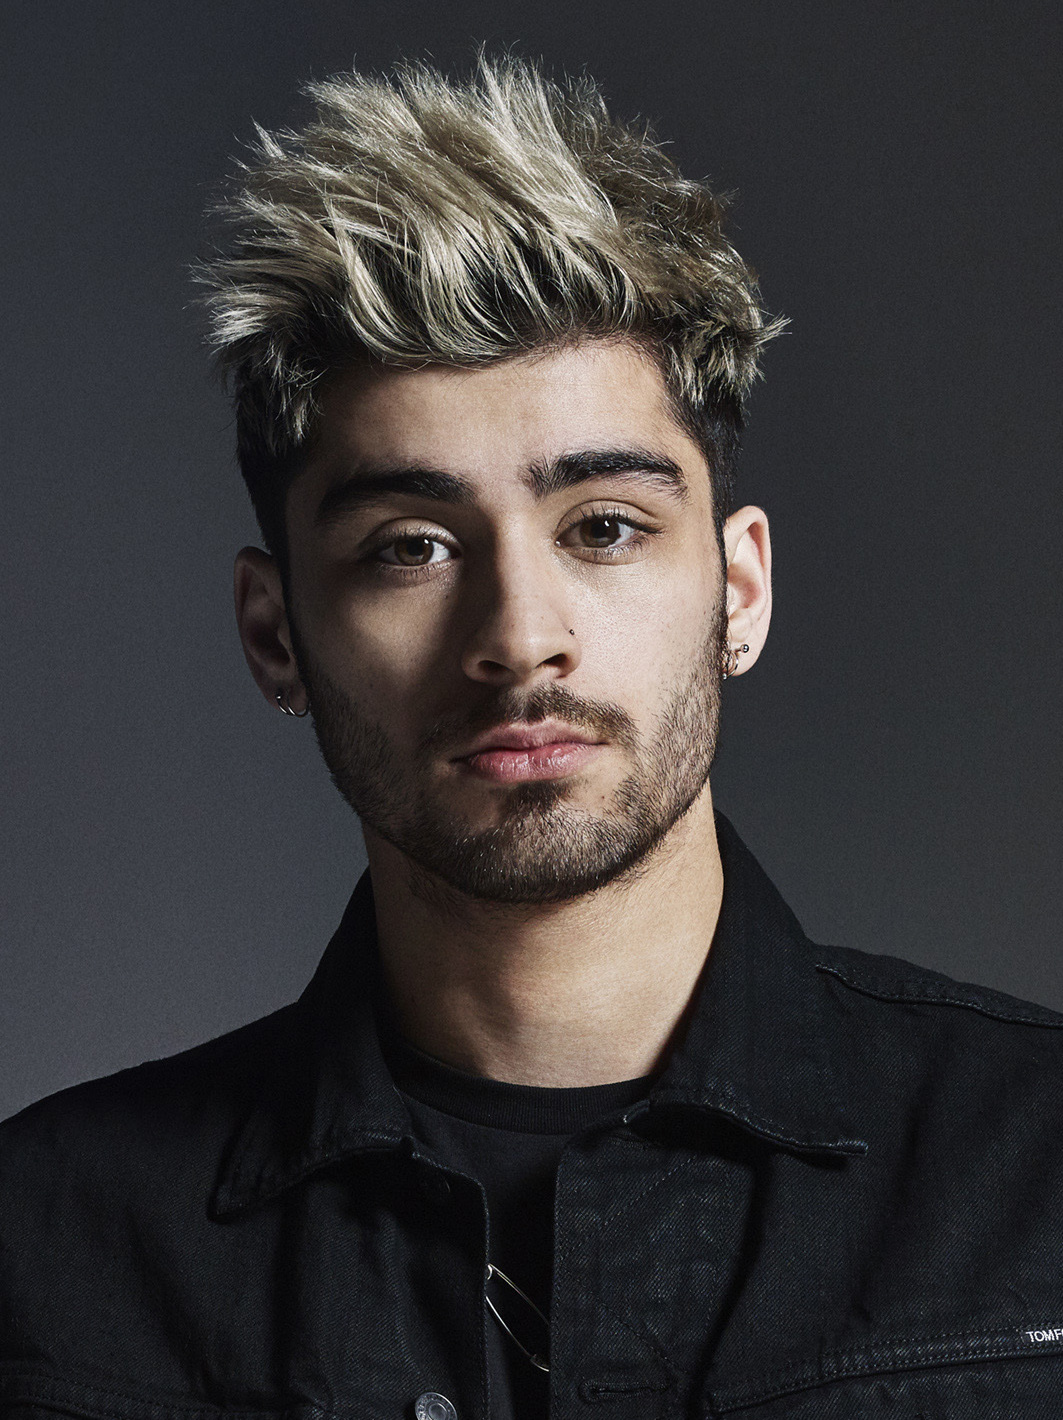 The 28-year old son of father Yaser Malik and mother Trisha Malik Zayn Malik in 2021 photo. Zayn Malik earned a  million dollar salary - leaving the net worth at 23 million in 2021